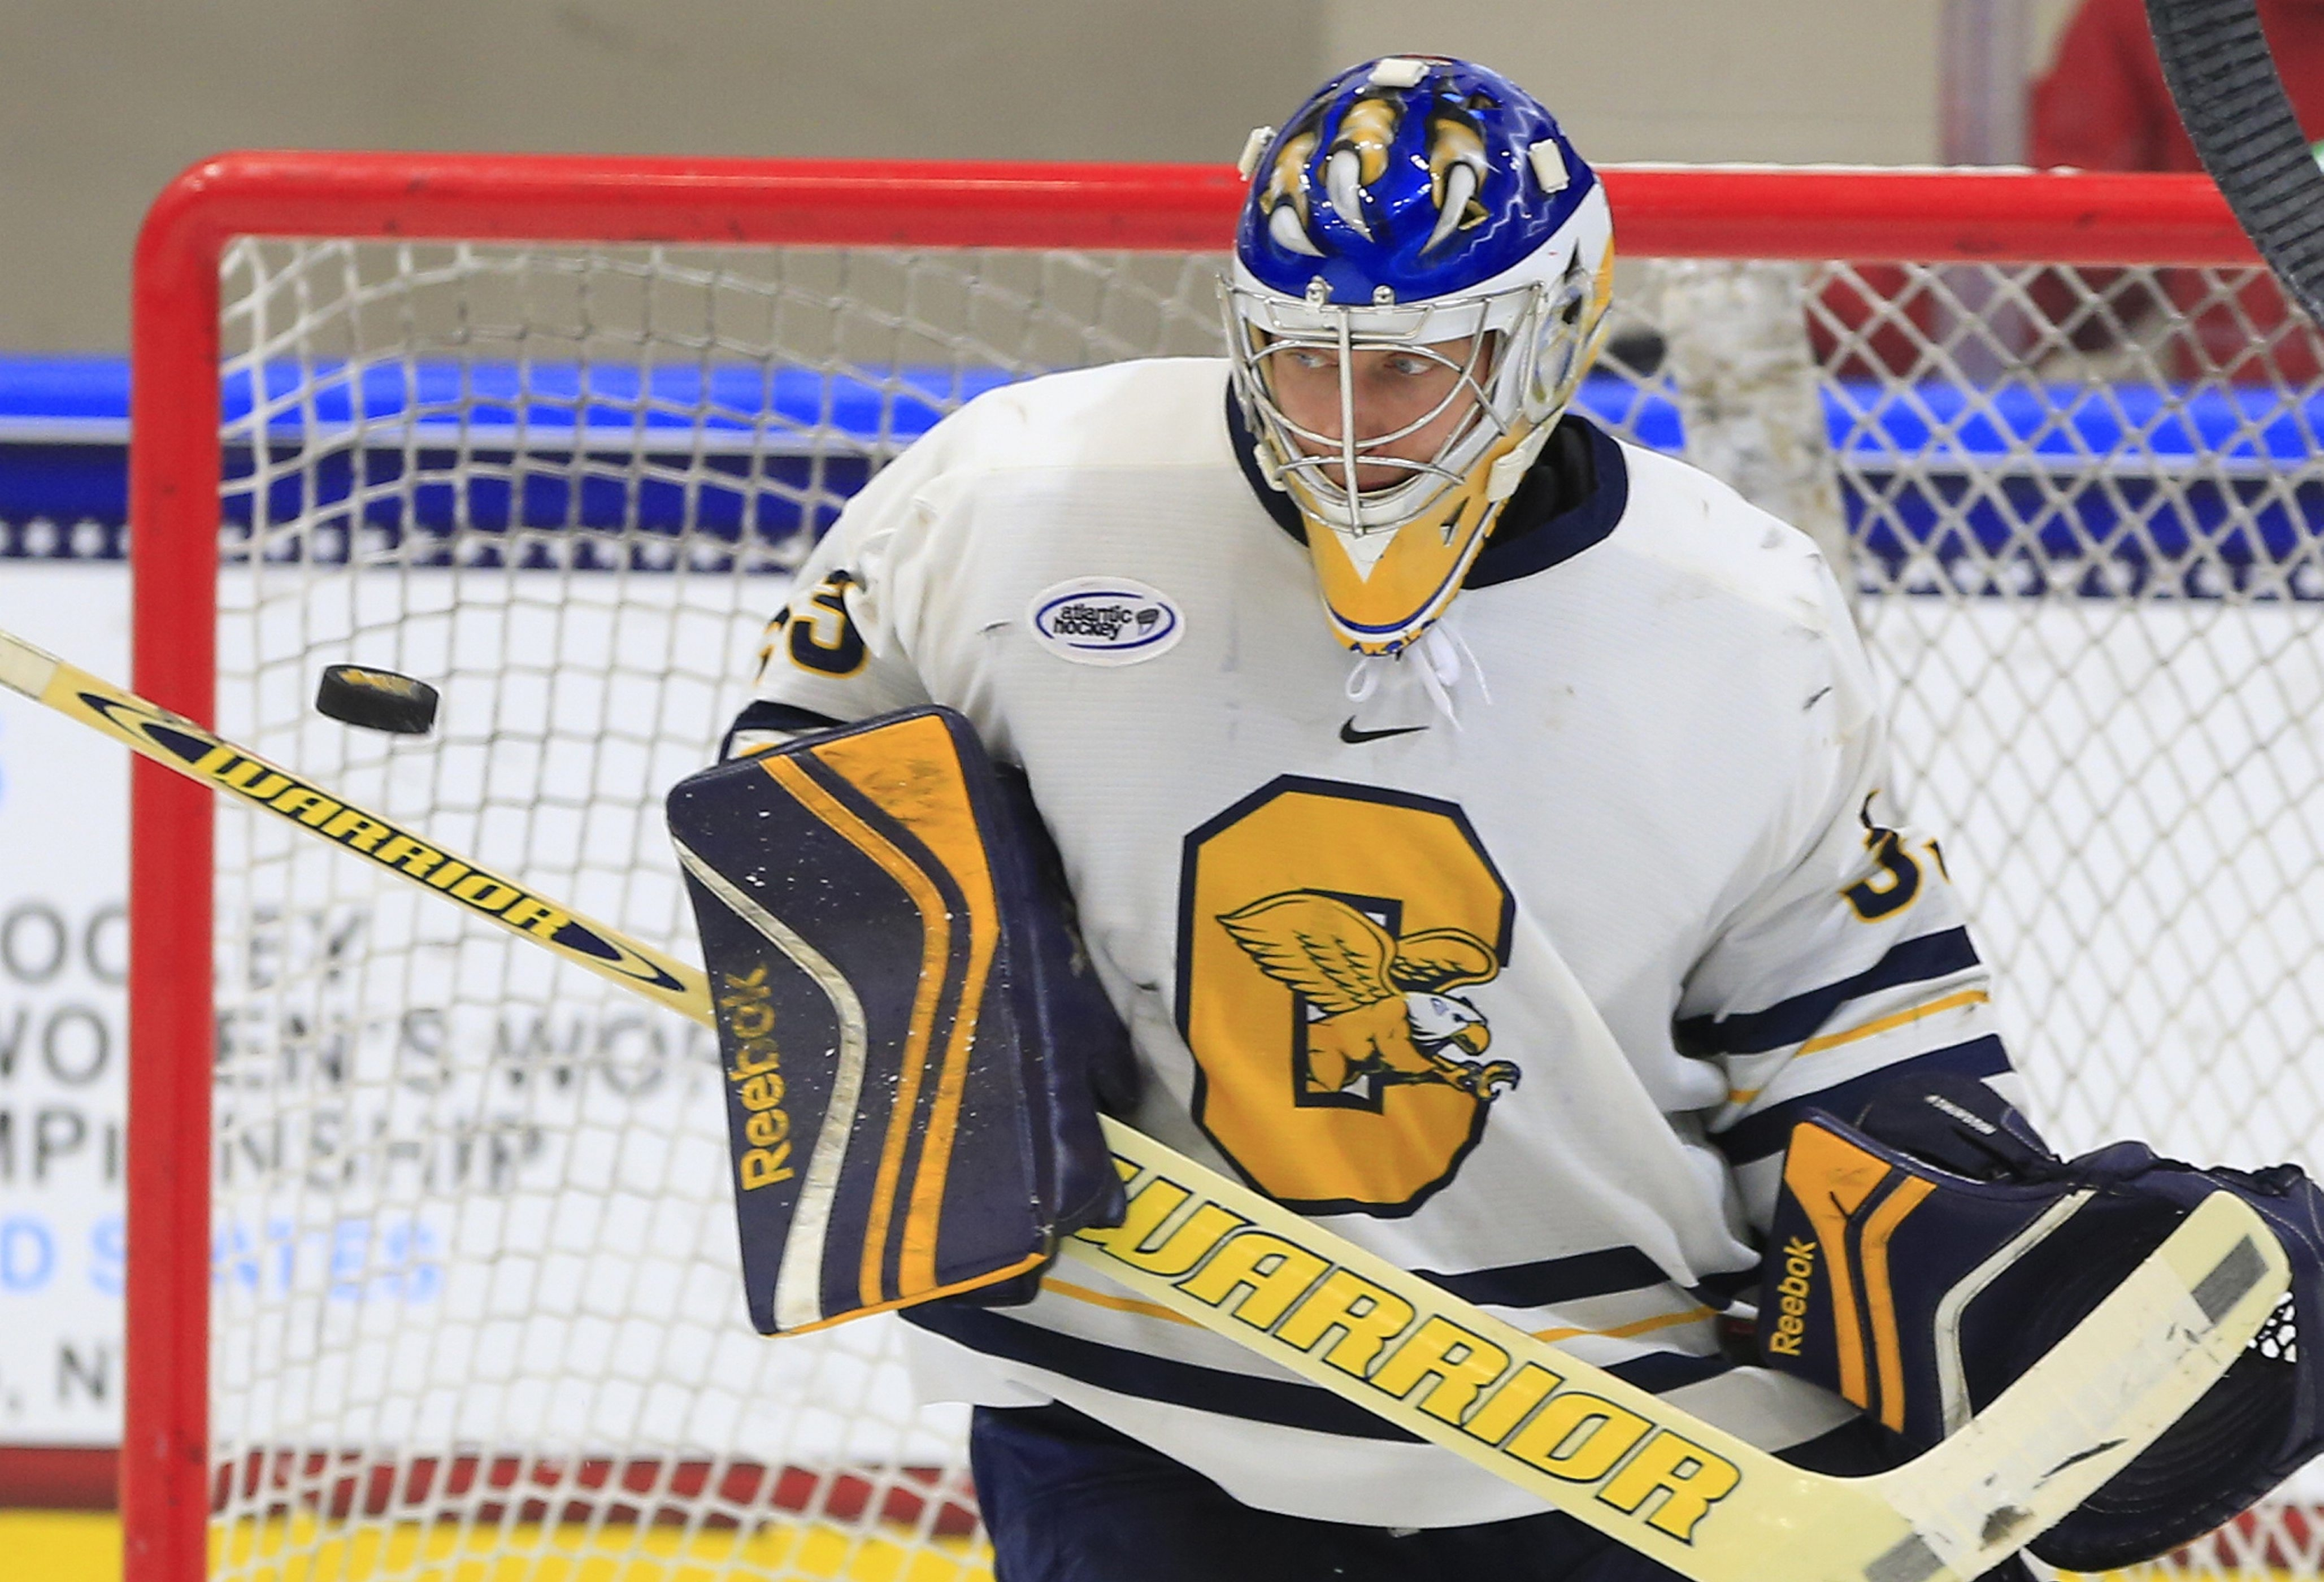 Canisius College alumnus Keegan Asmundson is back in Buffalo to try out as a goalie for the Sabres.